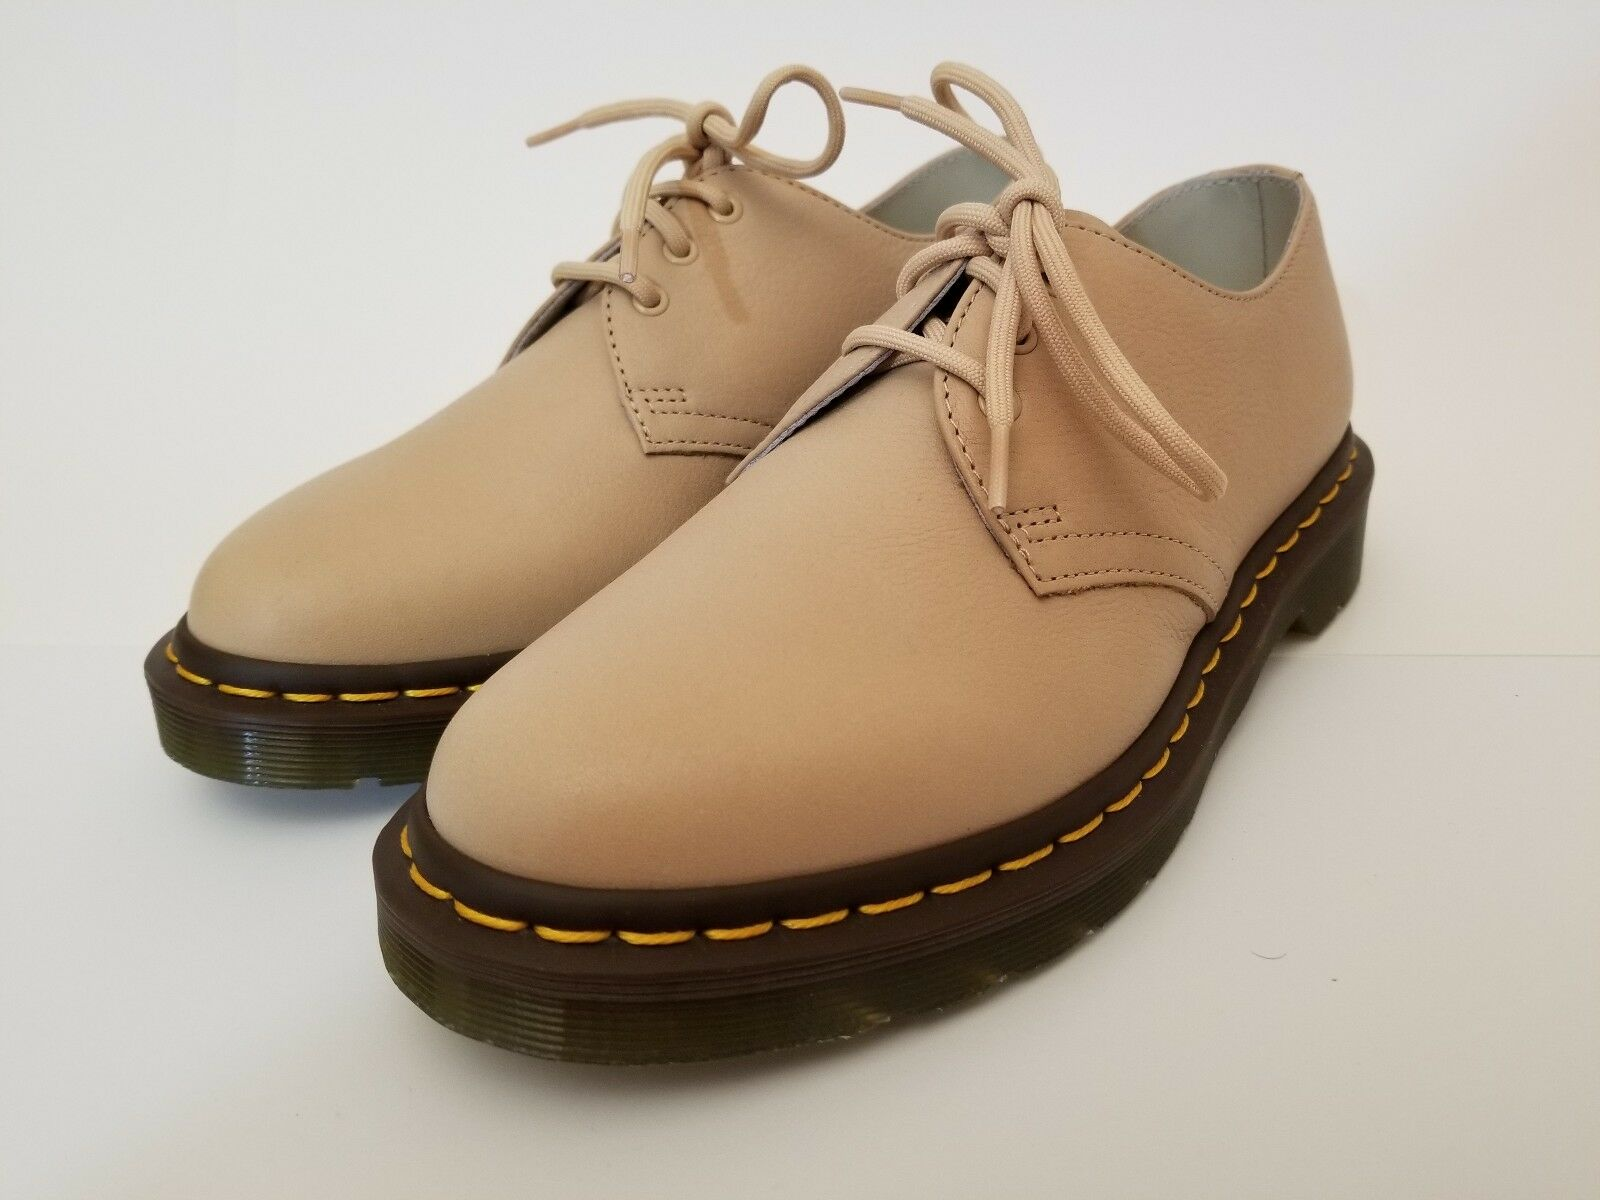 Doc Martens 1461 Taupe Virginia Tan 3 Eye Eye Eye Oxford Donna Scarpe Sz US 10 EU 42 New d0505c